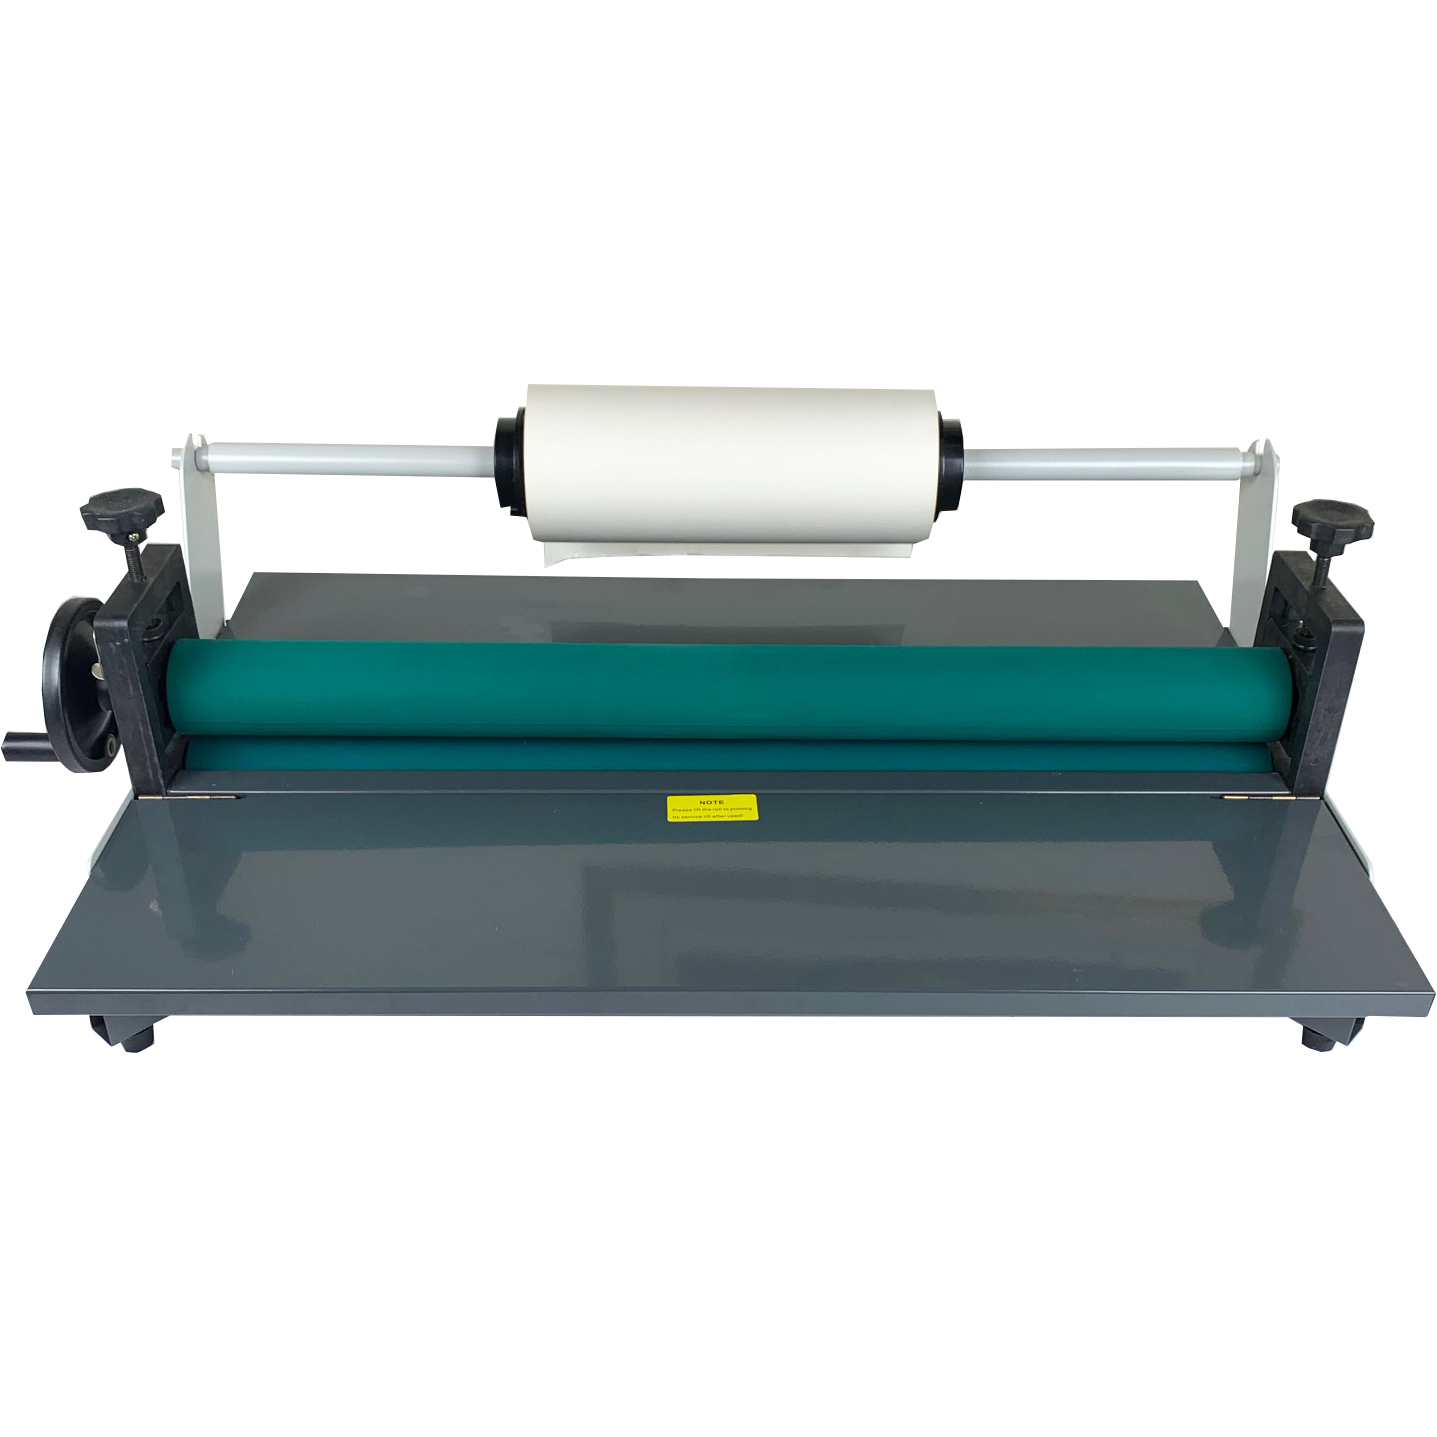 ELMPRO 750 Manual Cold Mounting Signage Laminator